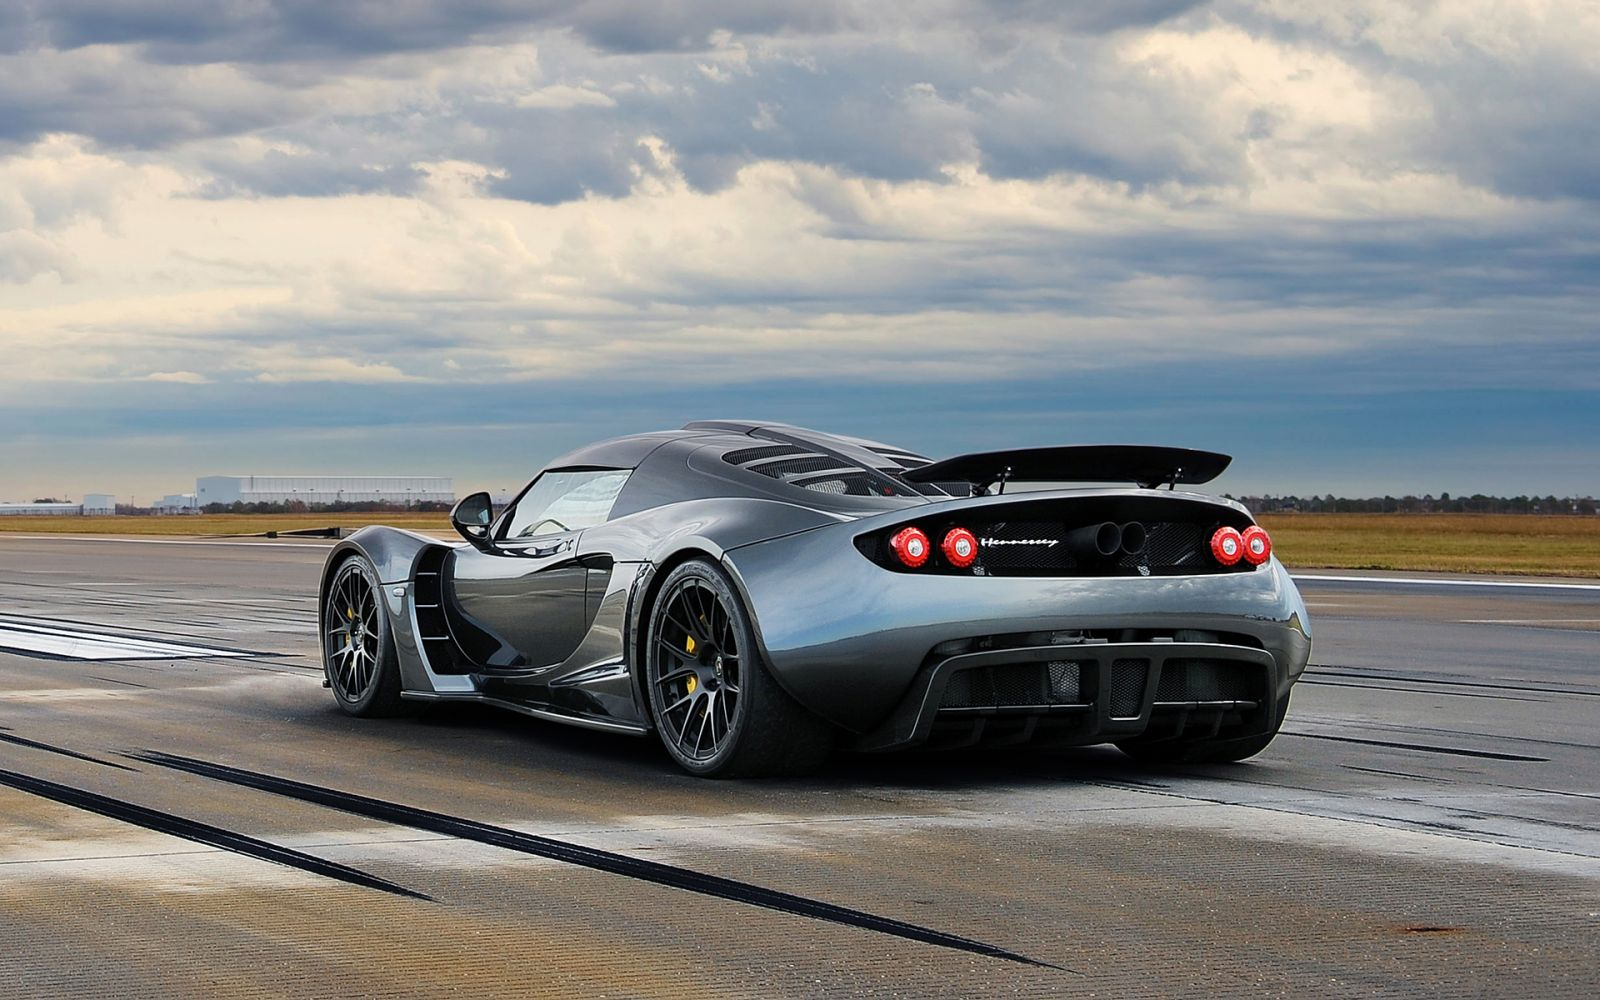 fastest cars in the world - 612×612